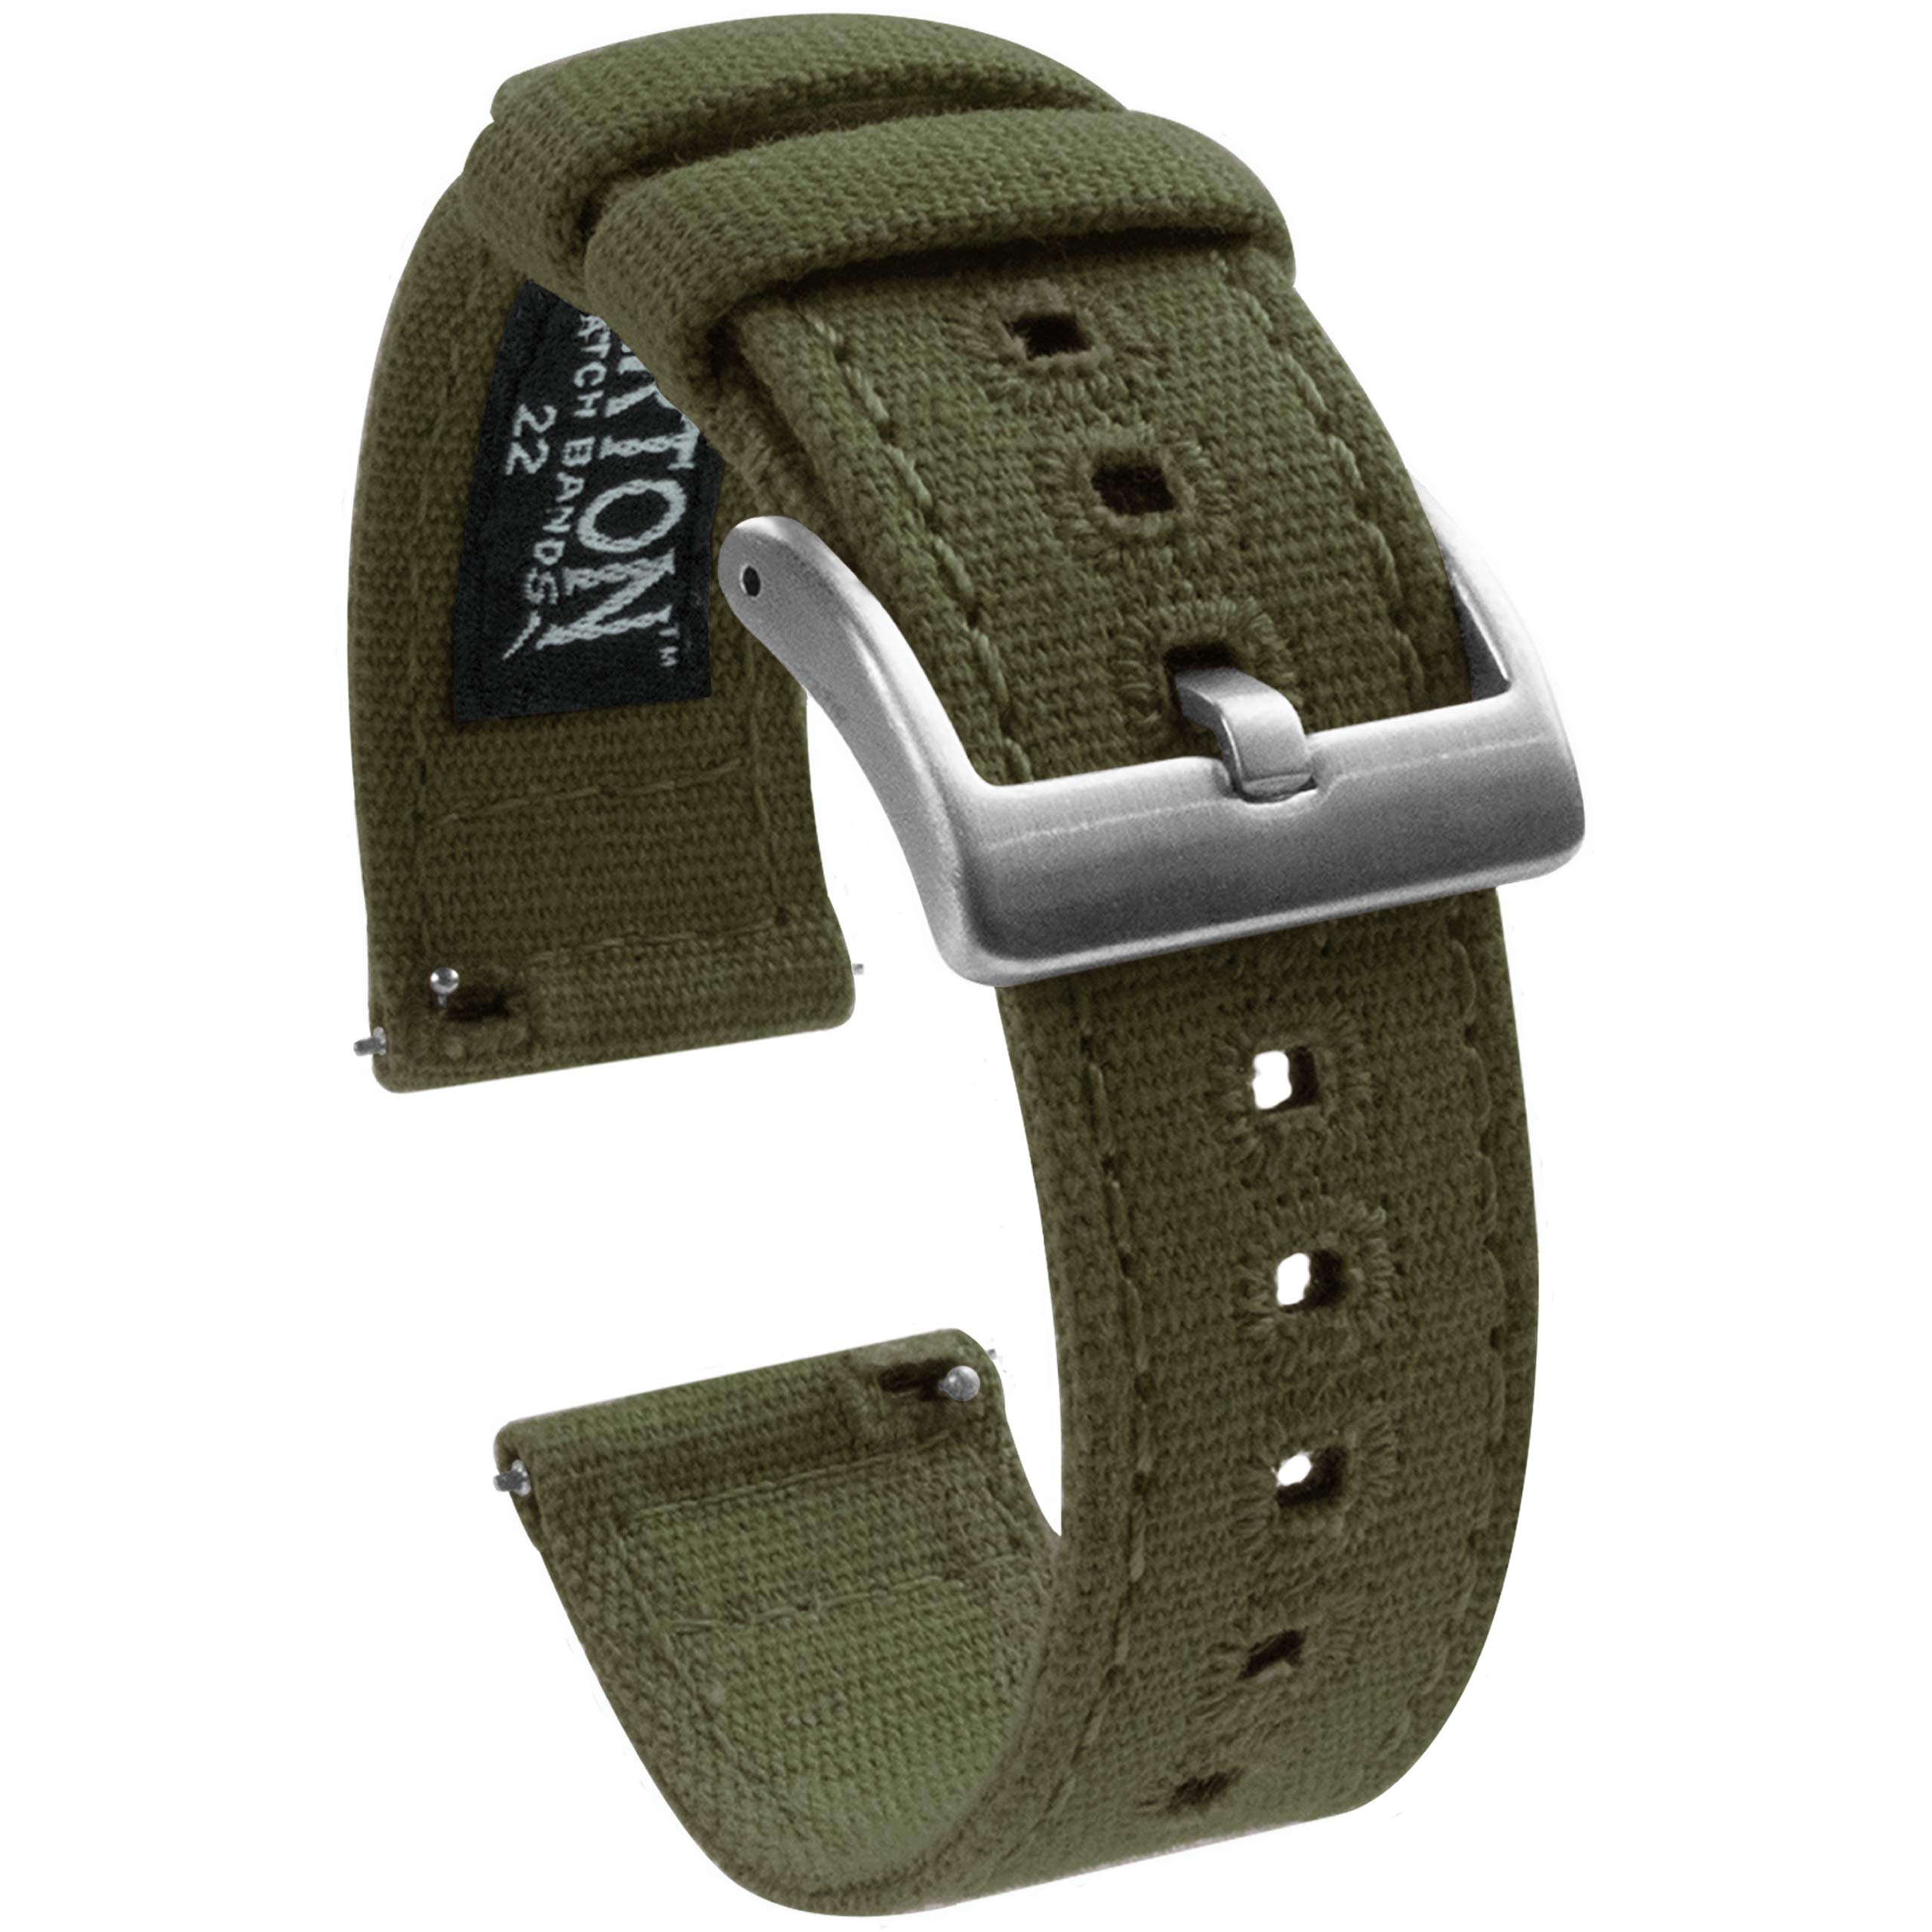 BARTON Watch Bands - Canvas Quick Release Watch Straps - Choose Color & Width - 18mm 19mm 20mm 21mm 22mm or 23mm